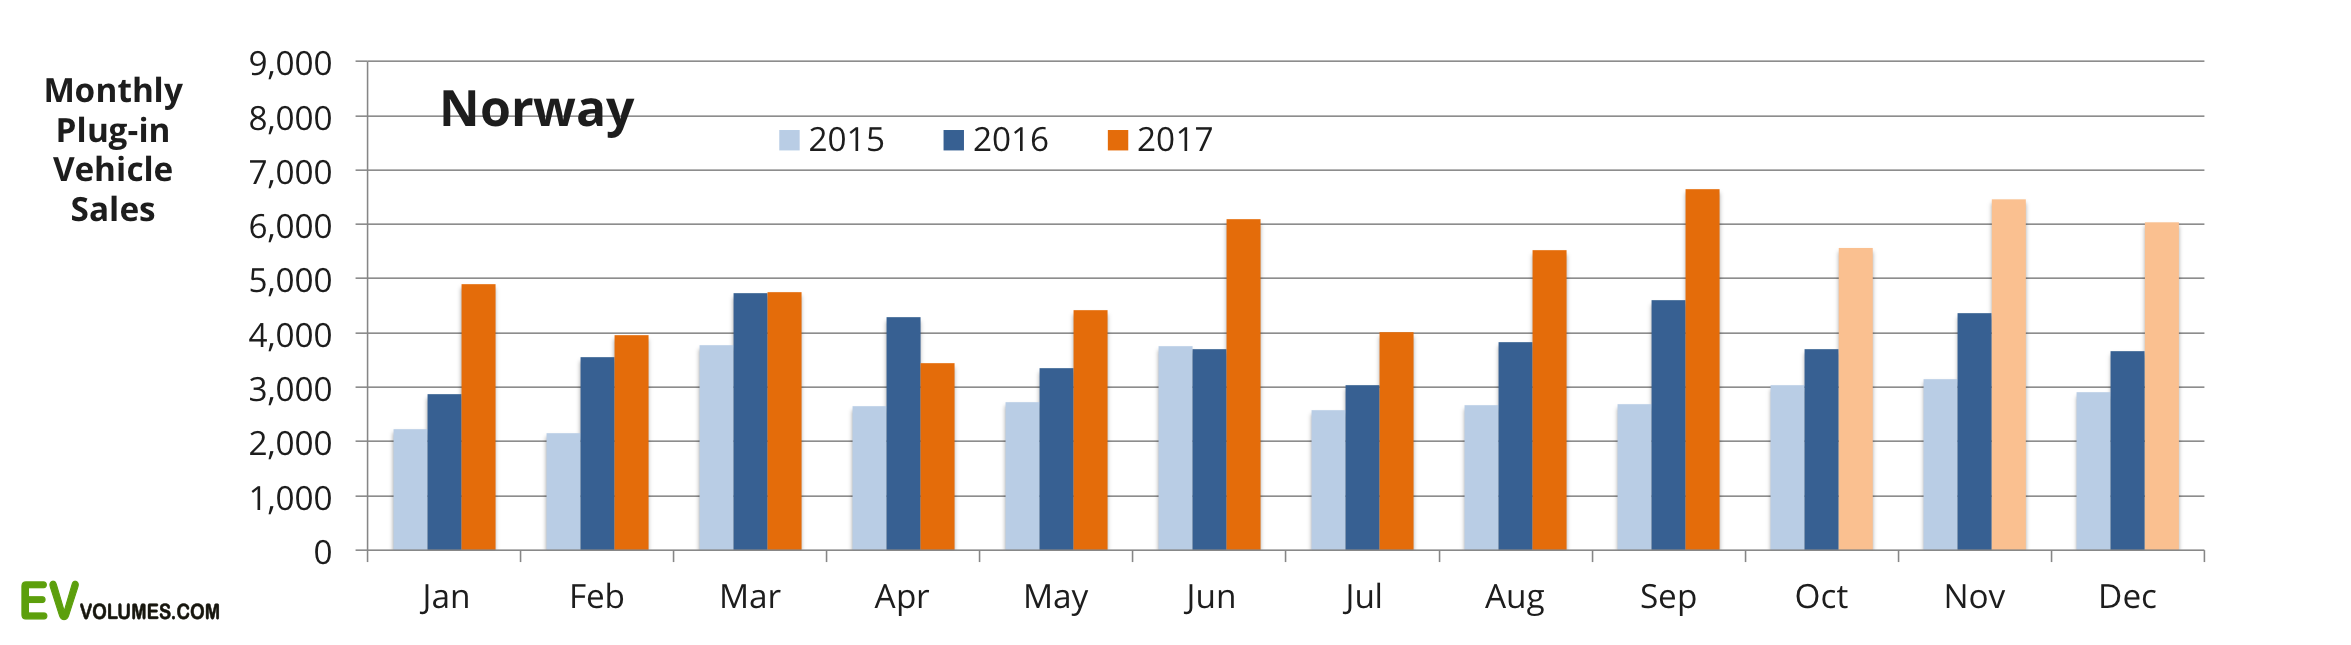 first Norway Plug-in Sales Q3-2017 and YTD image